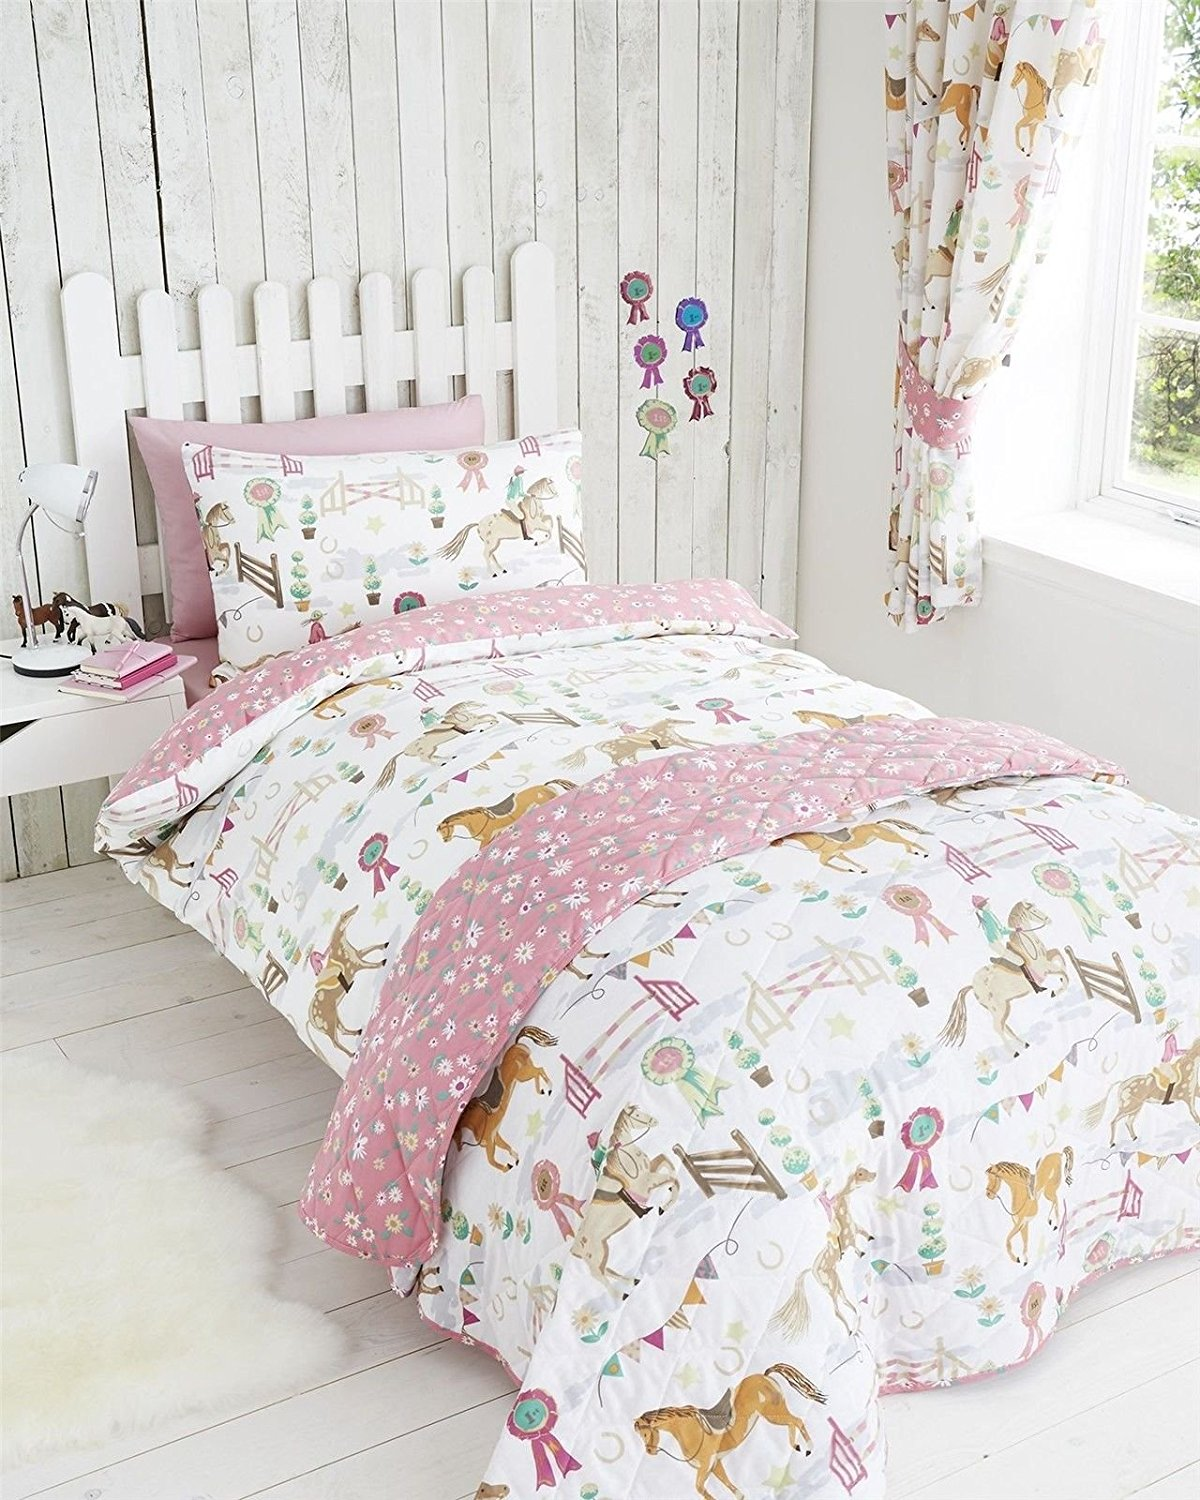 Childrens-boys-girls-double-bed-duvet-set-horse-show-jockey-horses-bedding-quilt-cover-set-white-dai-wallpaper-wp4805237